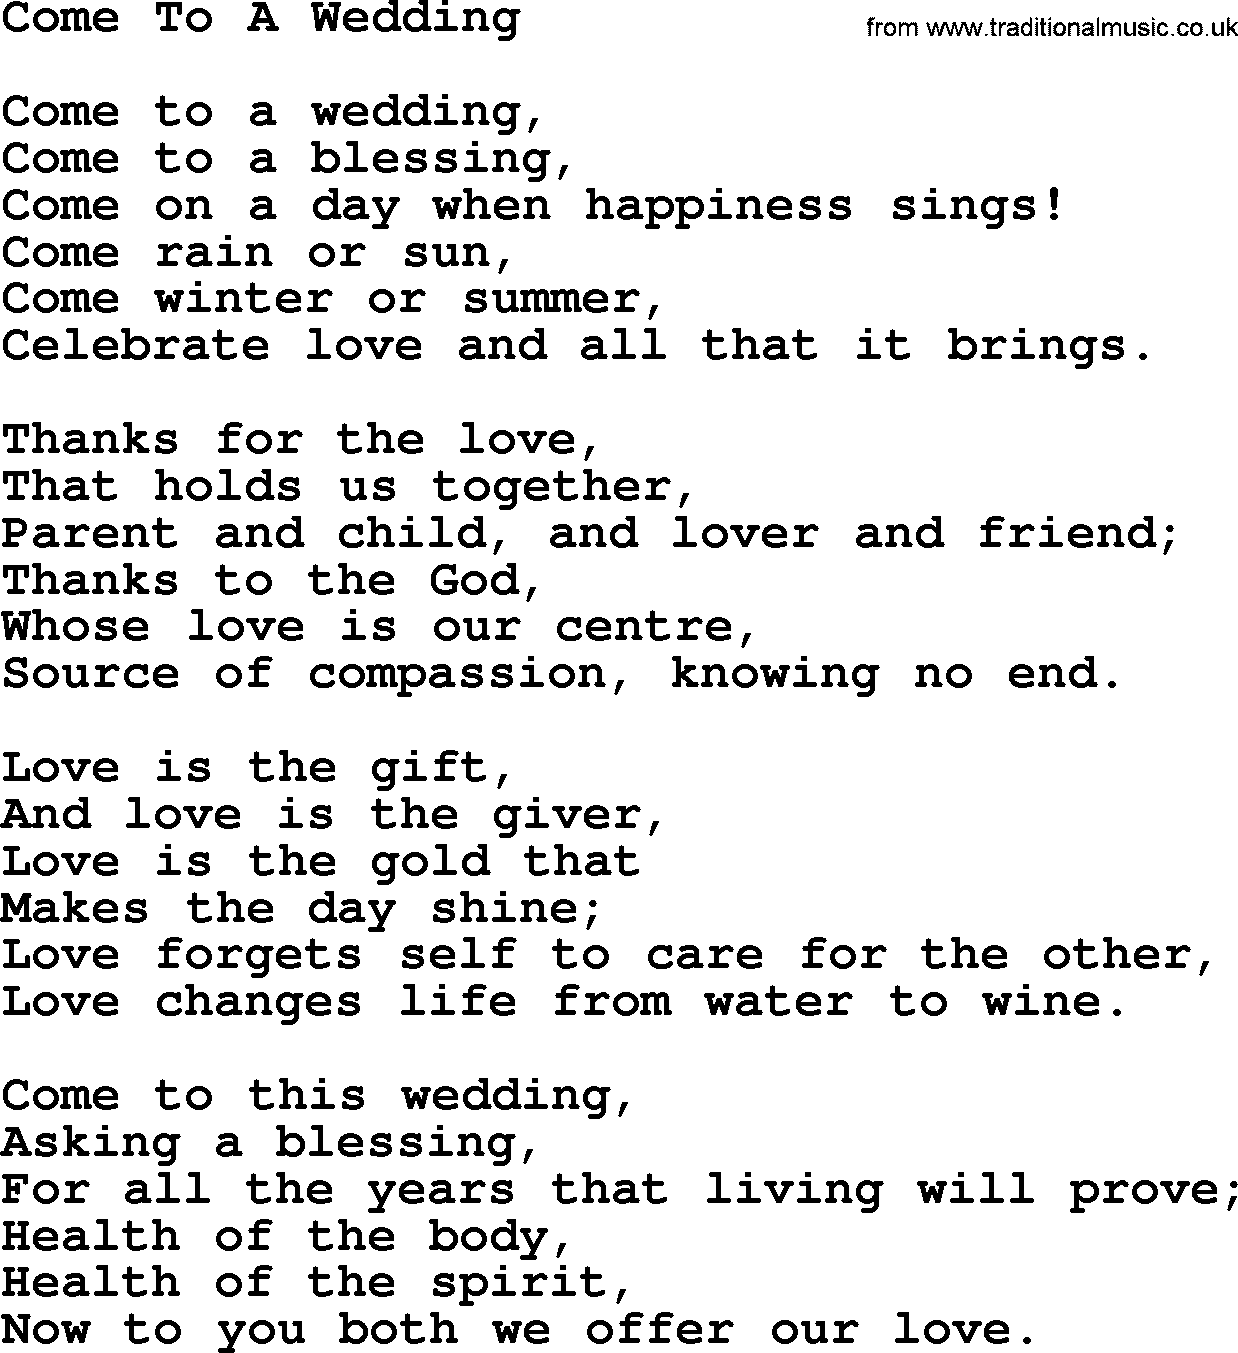 Wedding Hymns and songs: Come To A Wedding.txt - lyrics, chords ...